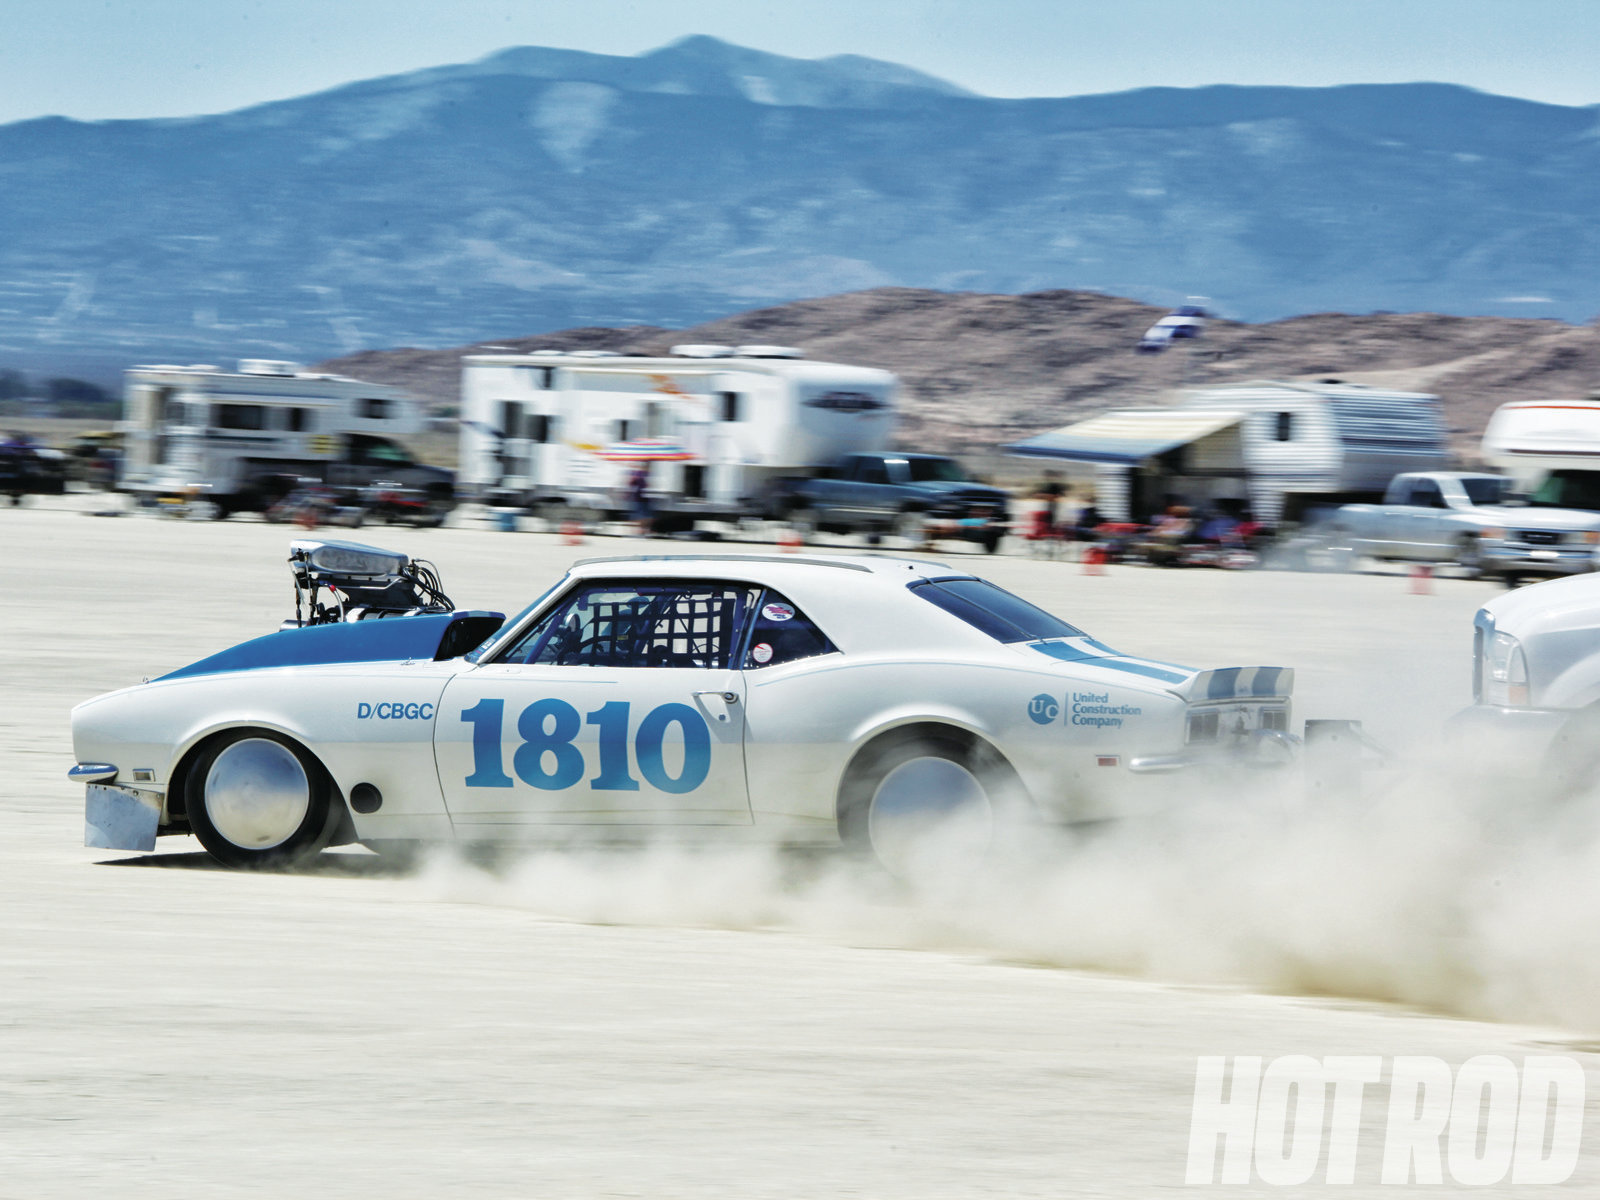 We see more classic muscle cars at Elmo than we do on the salt, though many of them struggle with aero. This '67 Camaro with a screw-blown 302 has been thrashing against a 196-mph record that's been held by a Pinto for 22 years, and finally beat it in May 2013 with a 197.390.